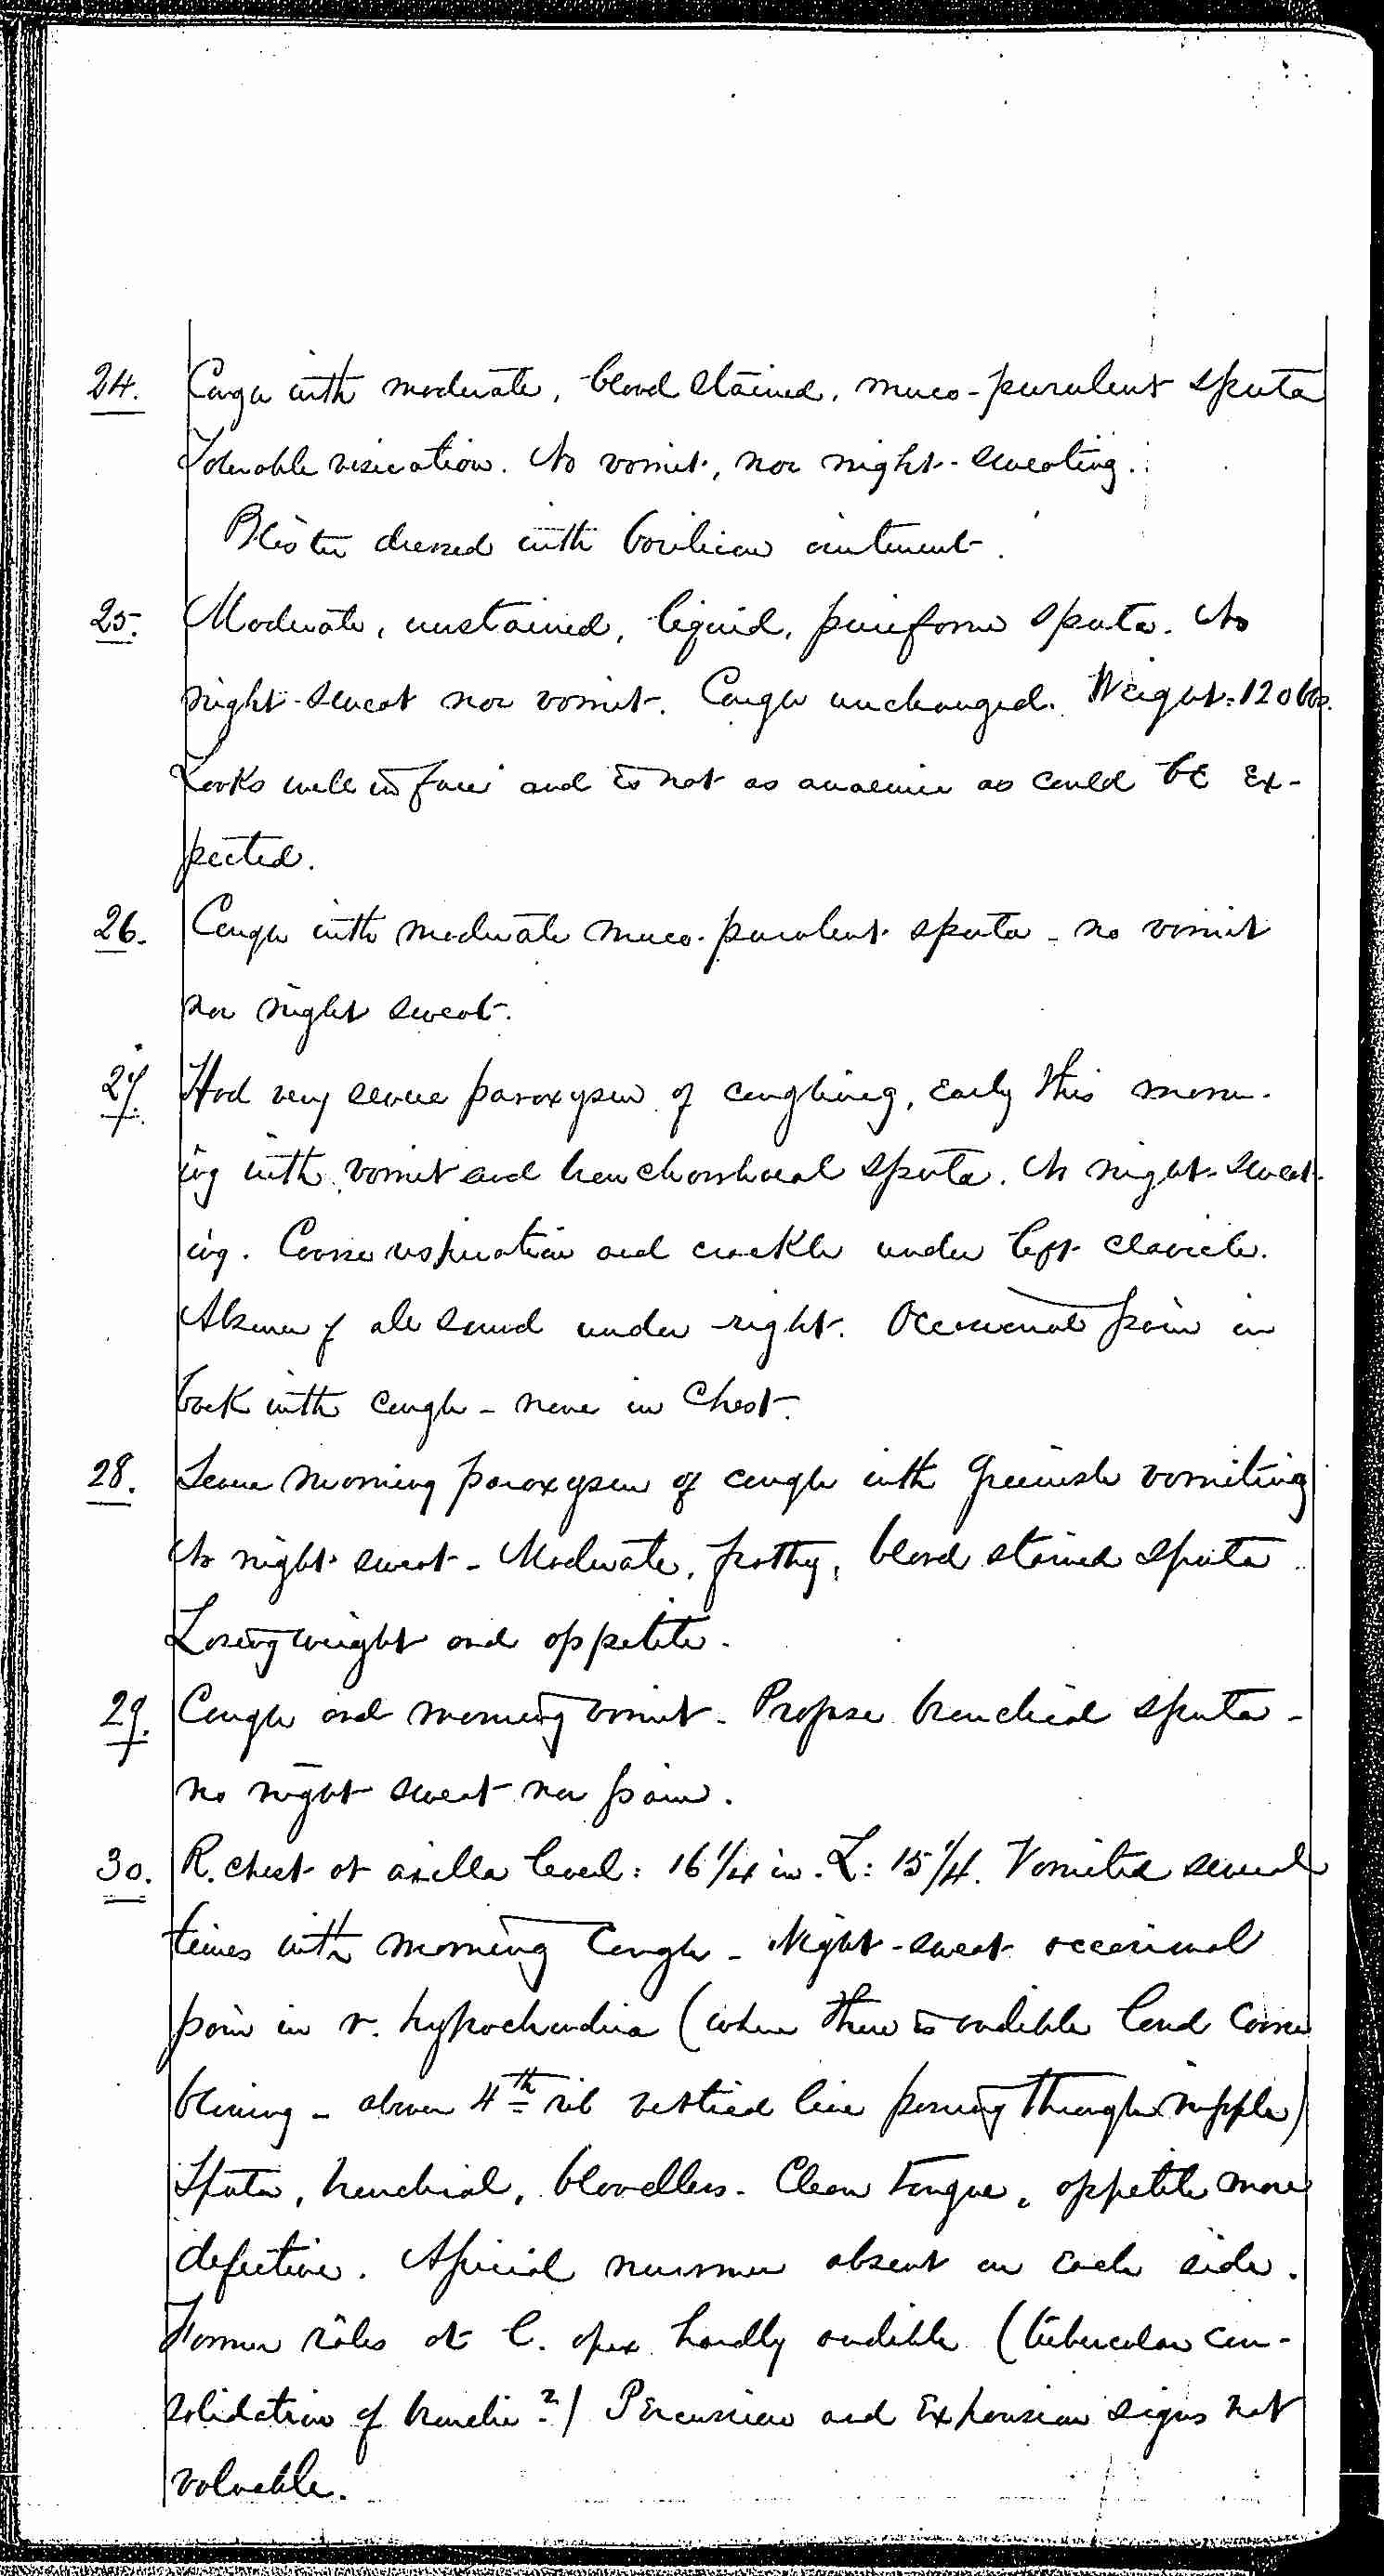 Entry for Hugh Riley (page 16 of 31) in the log Hospital Tickets and Case Papers - Naval Hospital - Washington, D.C. - 1868-69